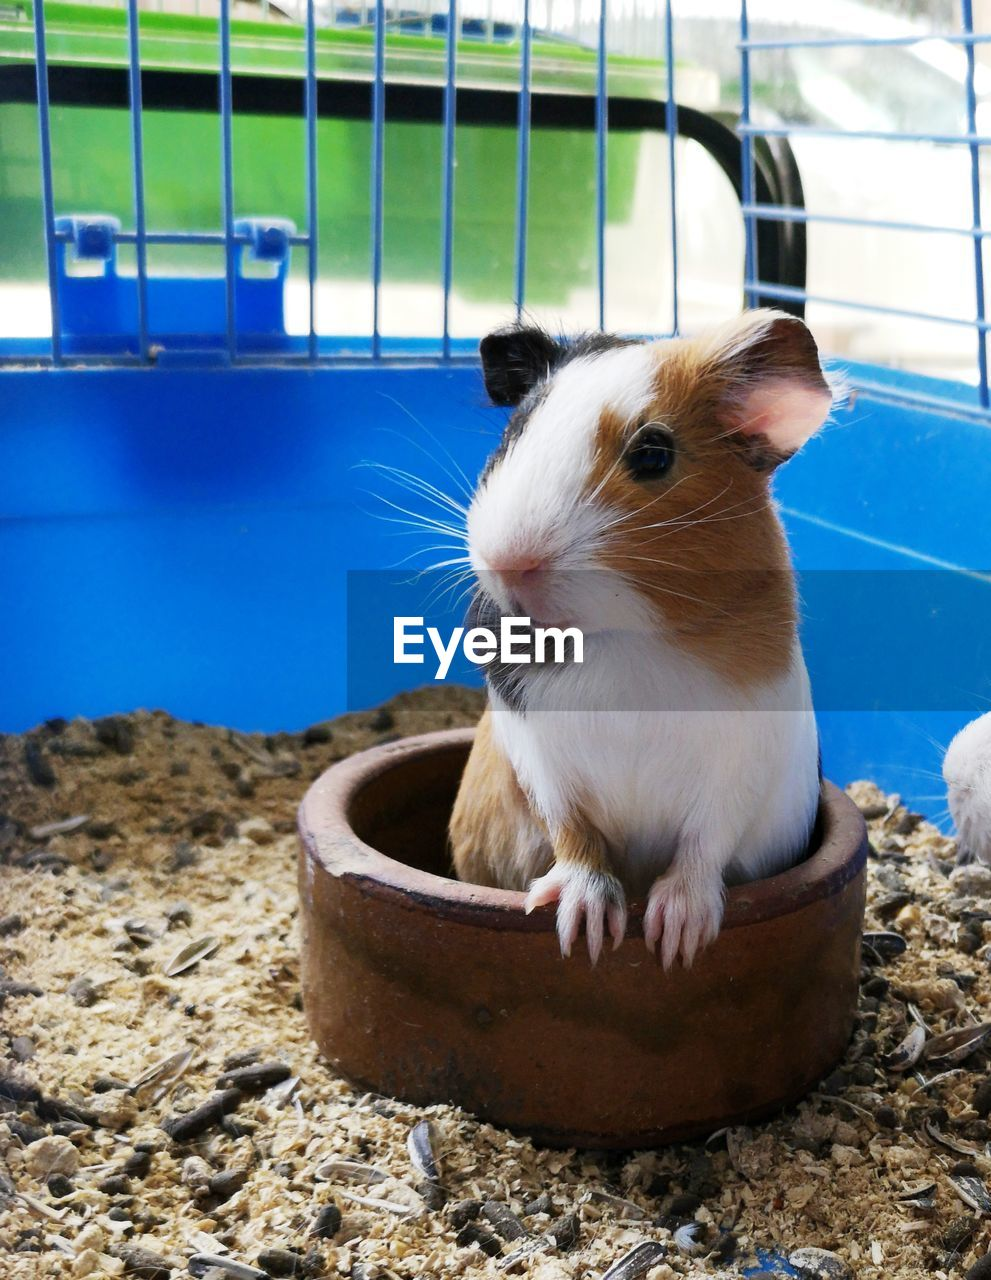 animal themes, animal, one animal, mammal, pets, domestic, rodent, vertebrate, animal wildlife, domestic animals, no people, cage, guinea pig, close-up, day, animals in the wild, focus on foreground, nature, container, indoors, whisker